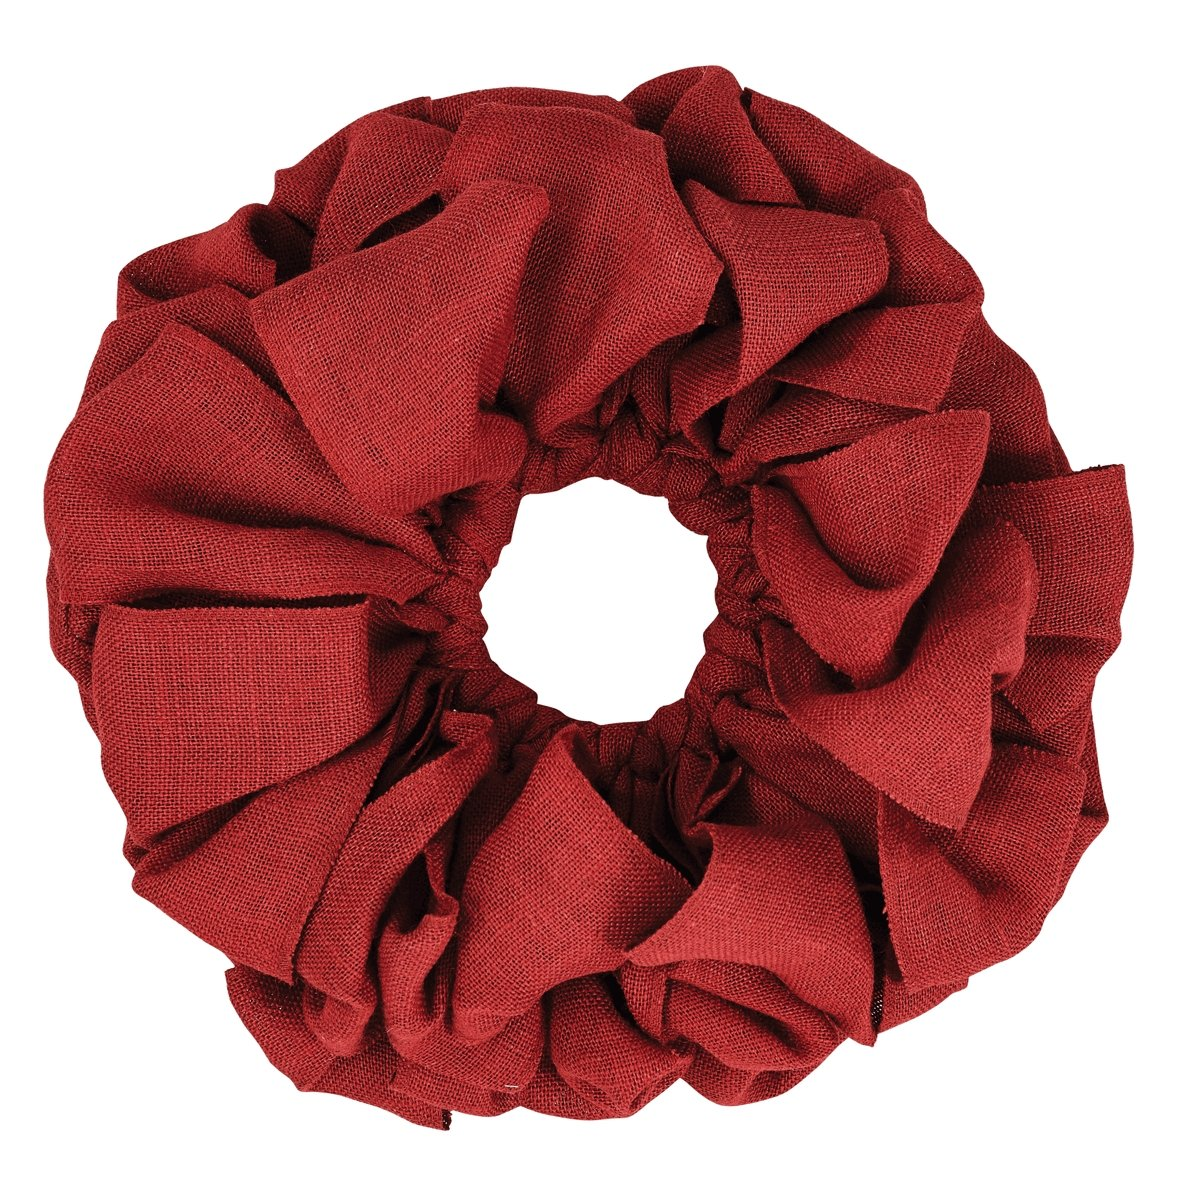 VHC Brands Christmas Holiday Decor - Burlap Round Wreath, Red, 15'' Diameter